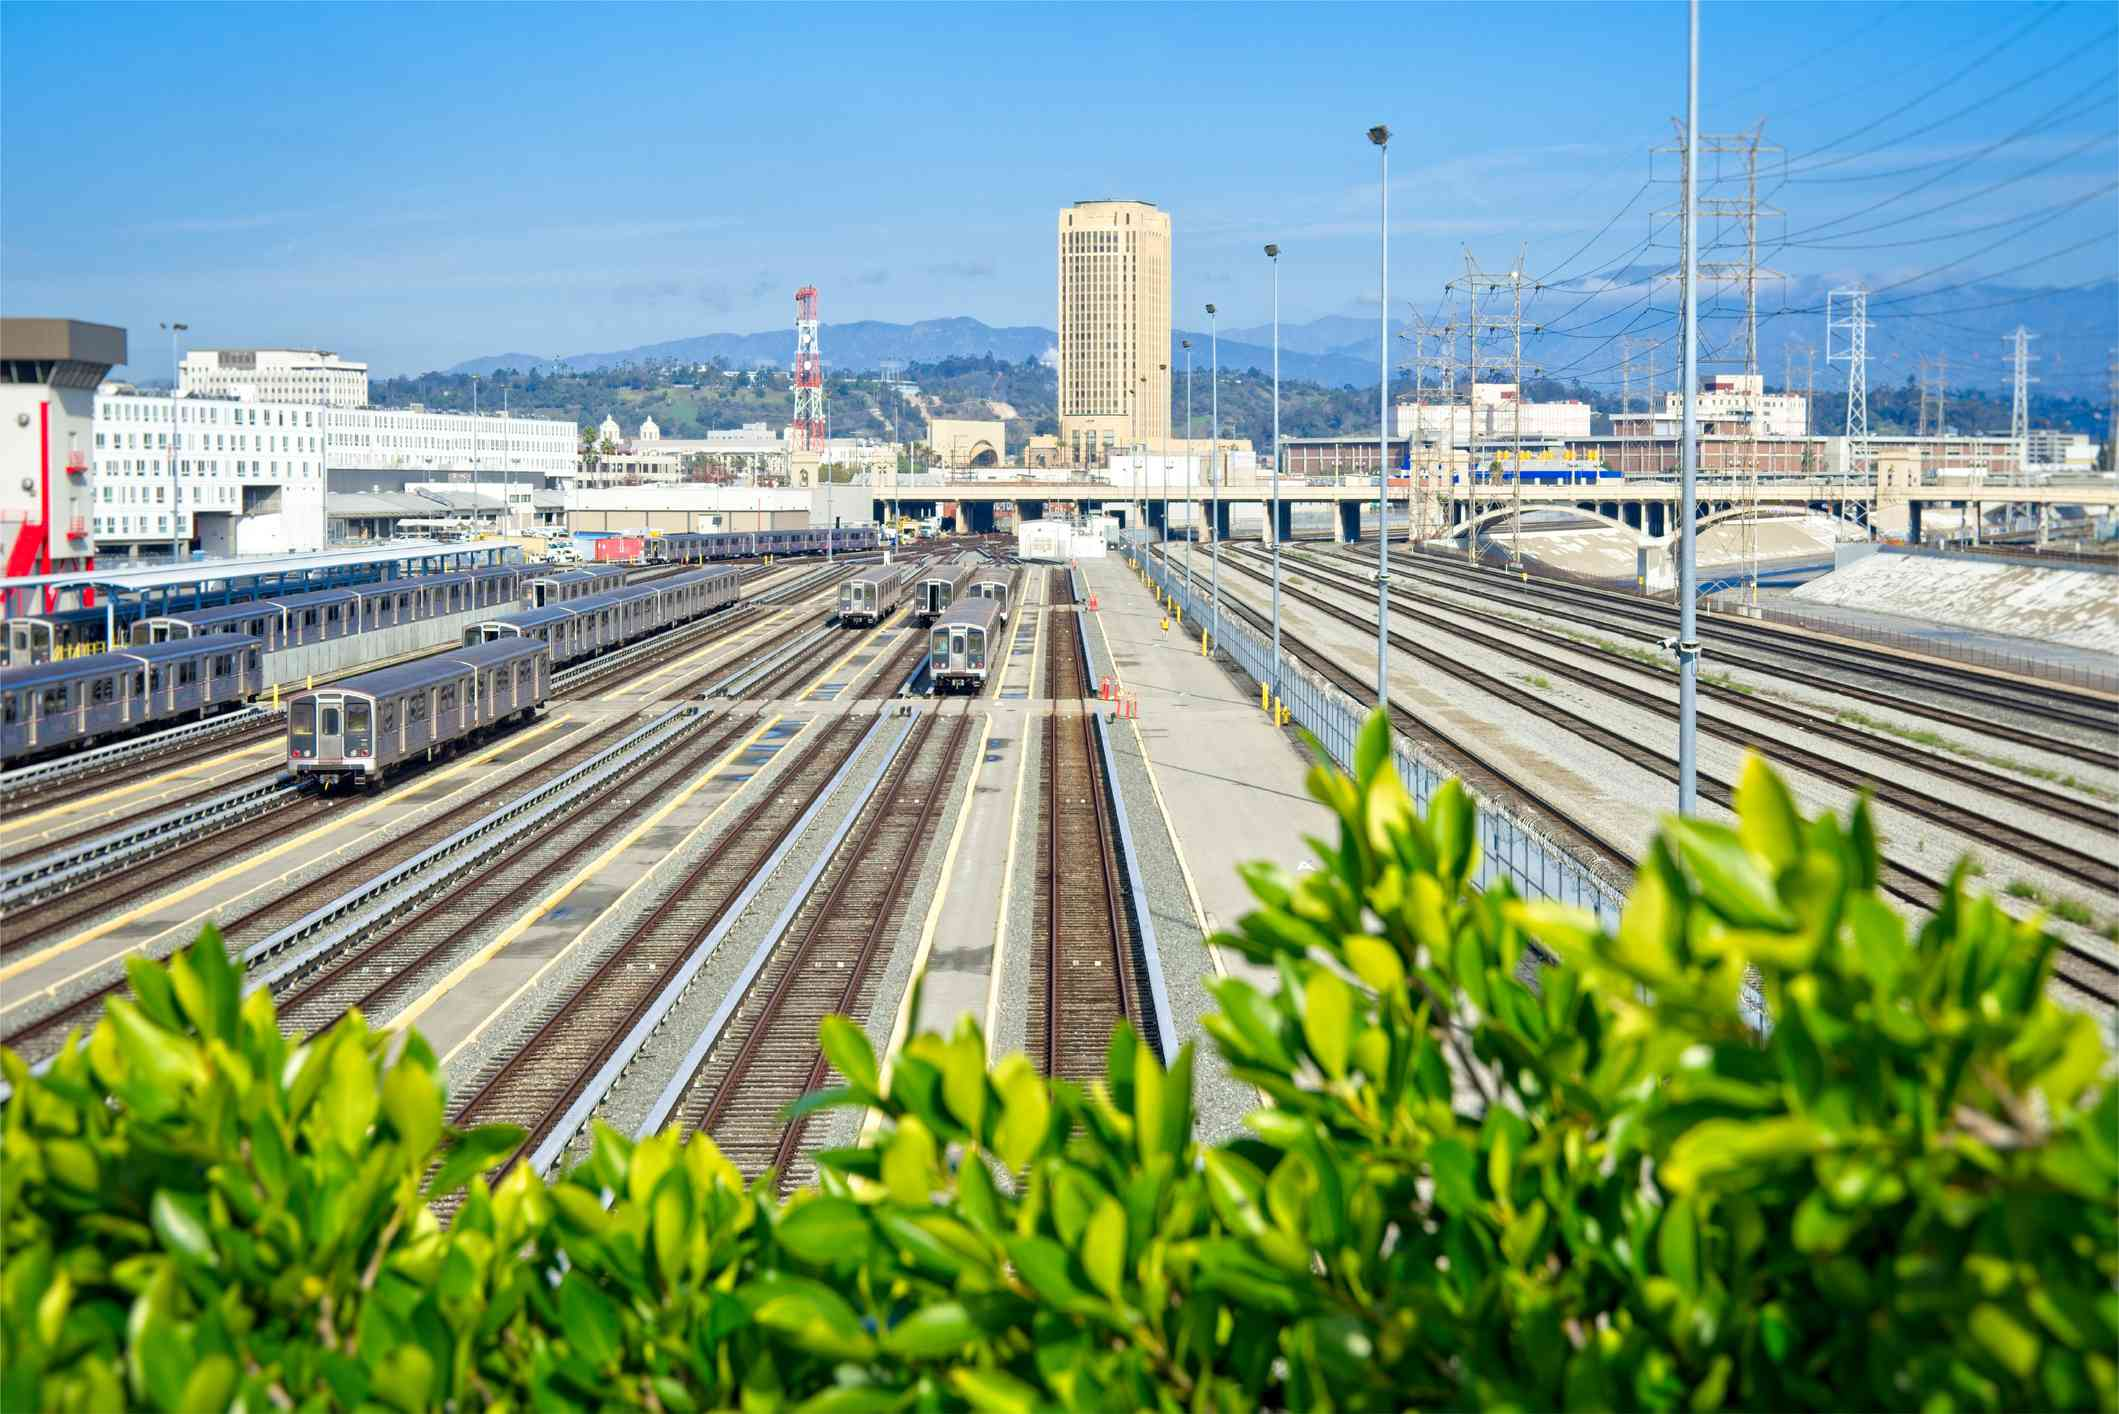 Railroads in perspective near Downtown Los Angeles